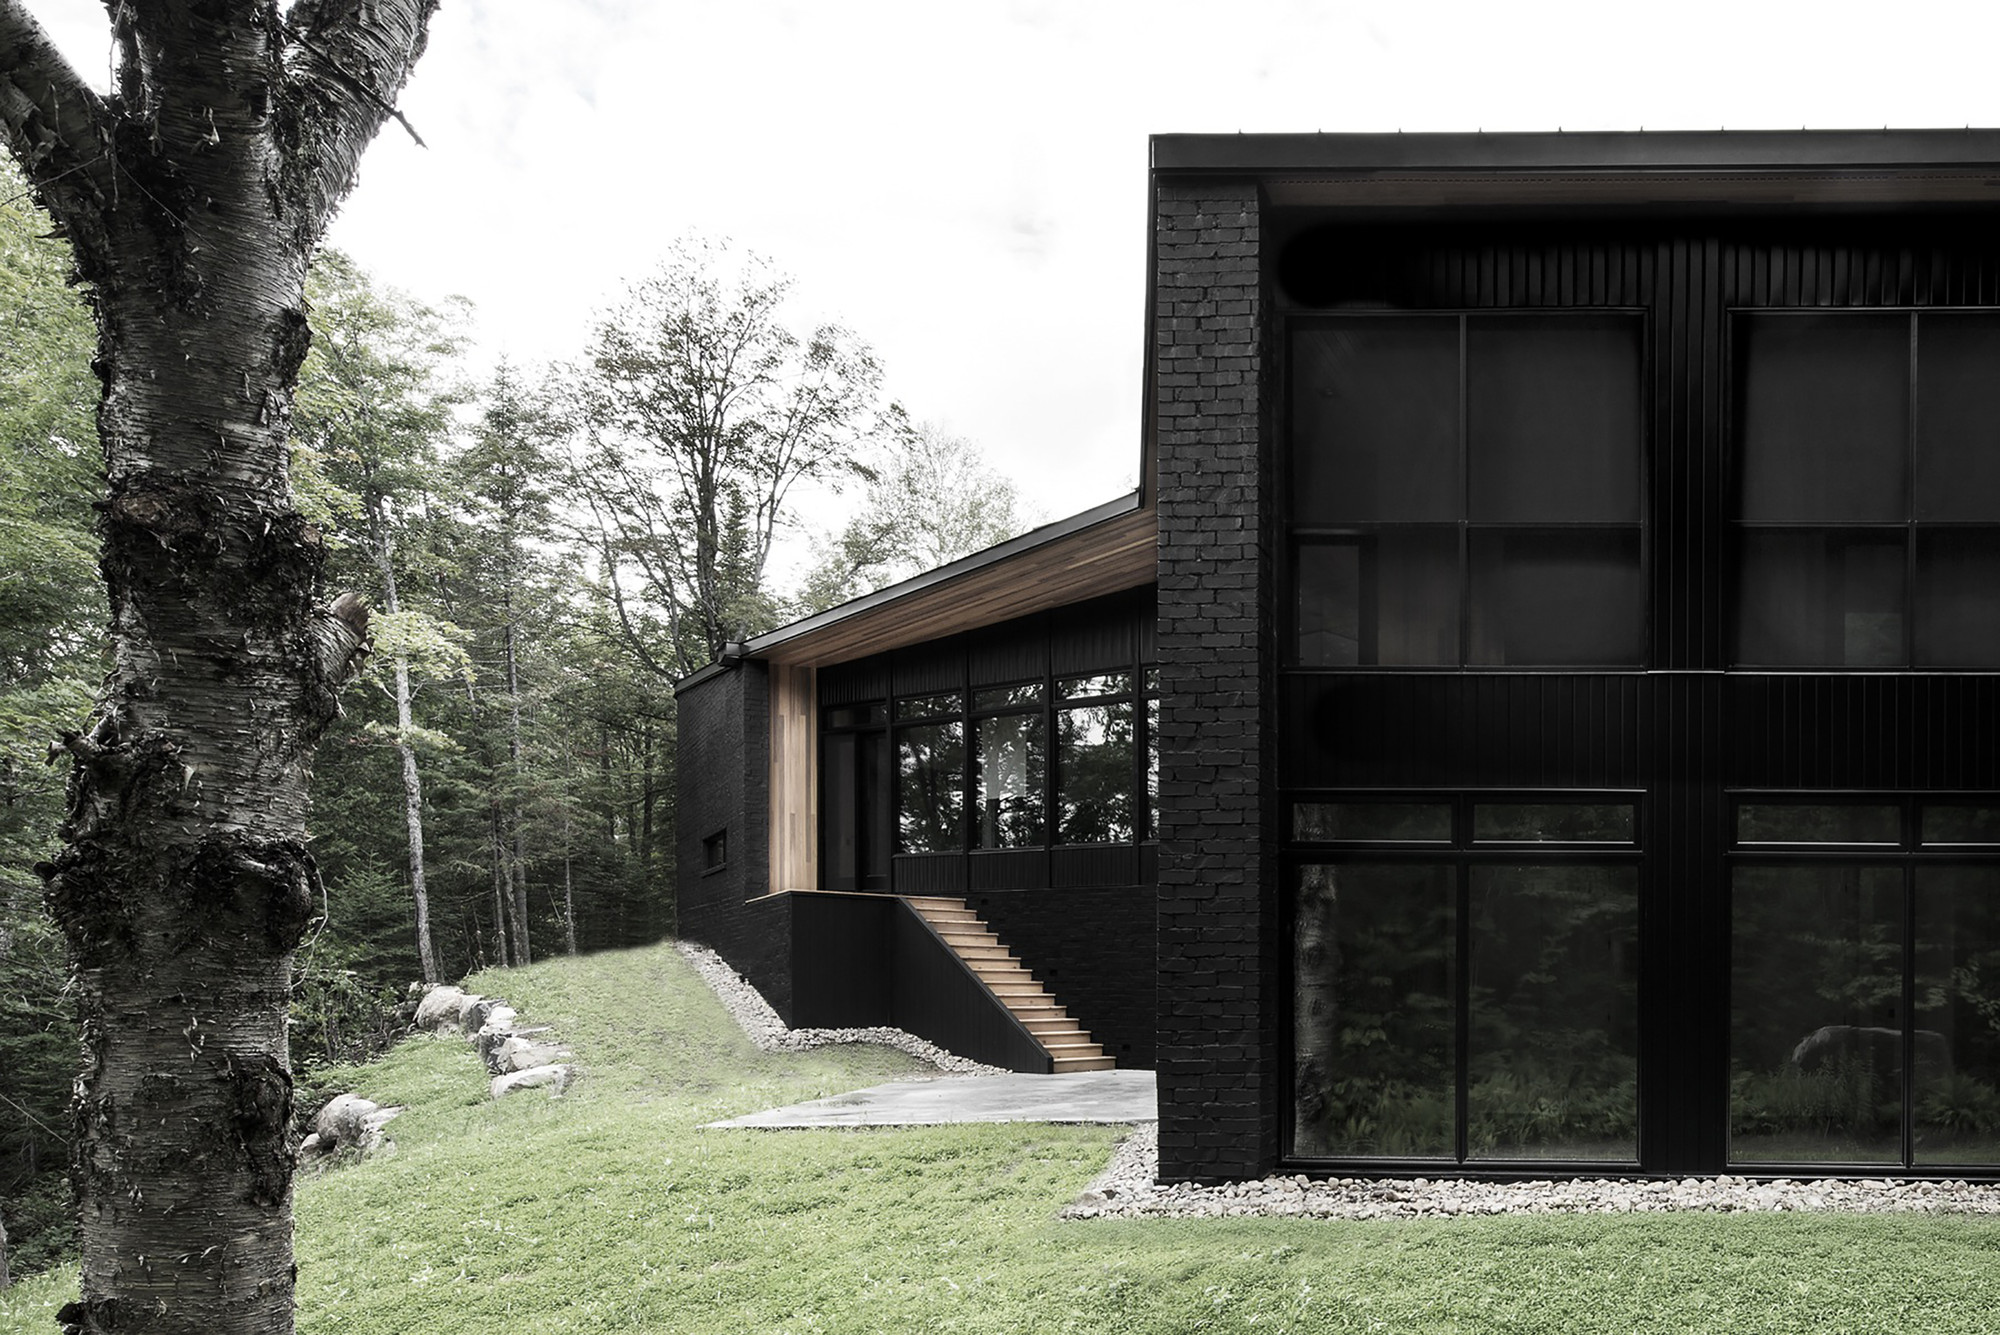 Screen house alain carle architecte archdaily for Finition exterieur